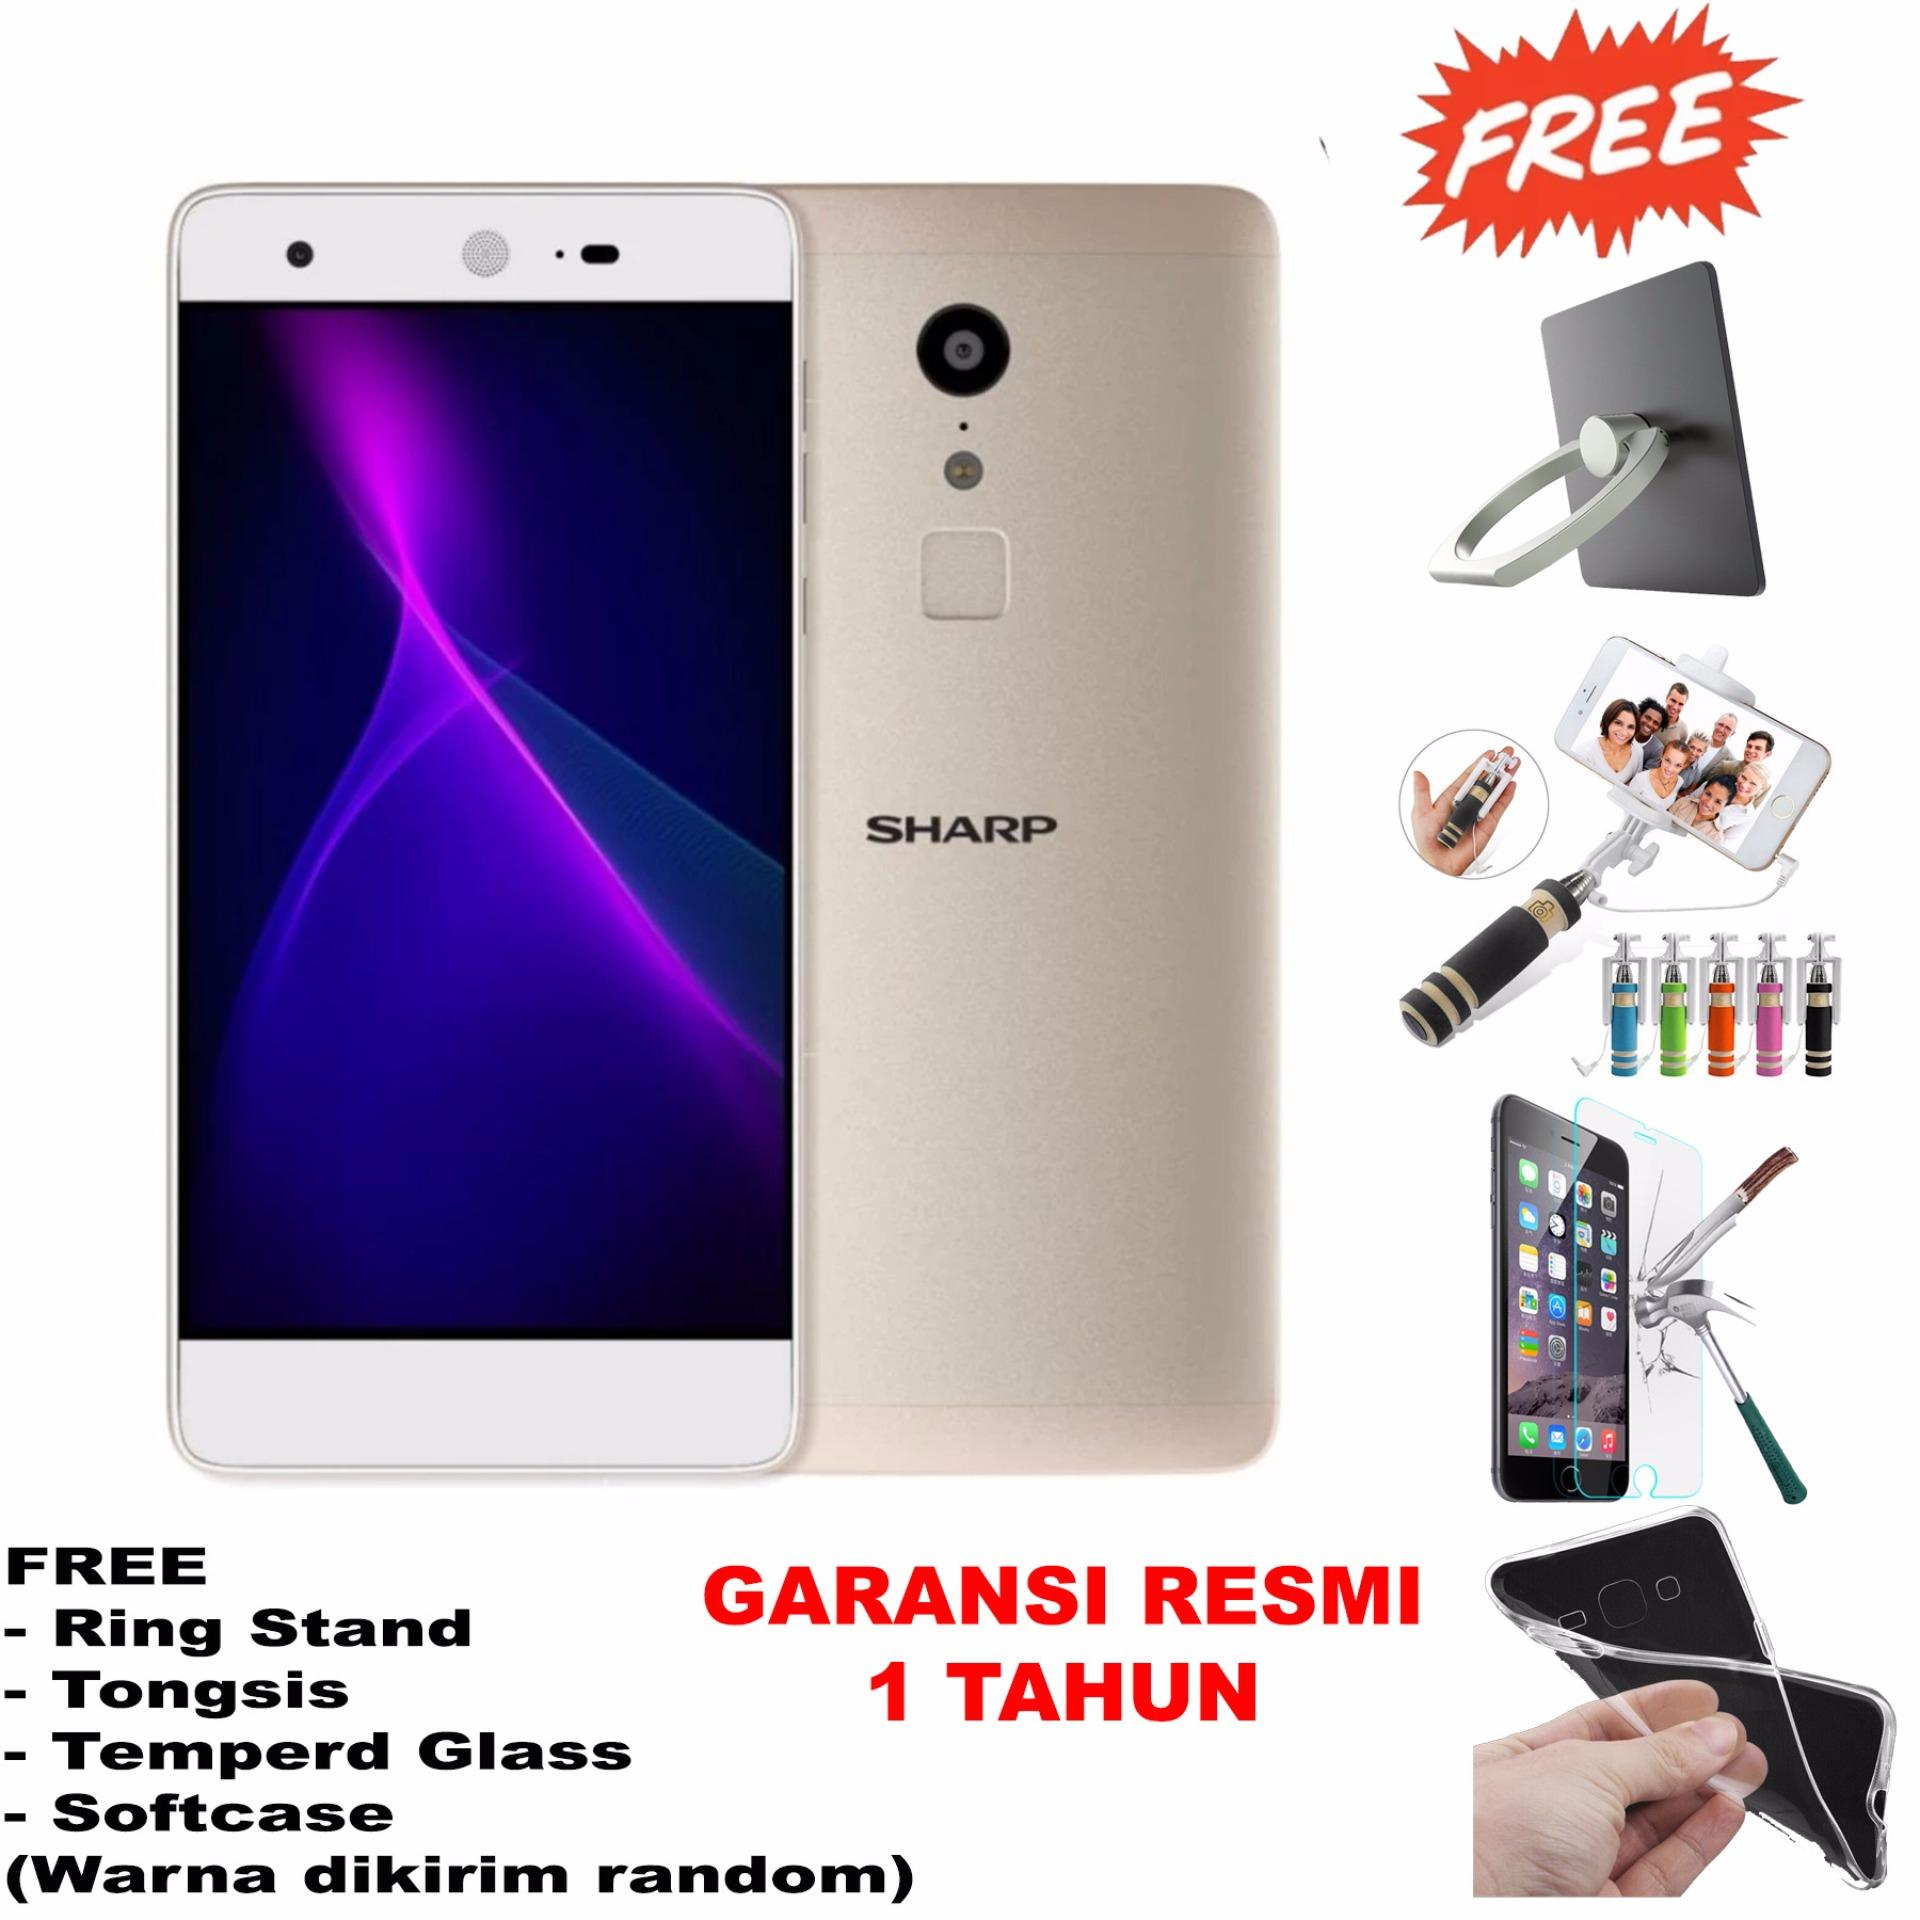 Jual Sharp Z2 Ram 4Gb Deca Core Kamera 16Mp 8Mp Free 4 Item Accessories Gold